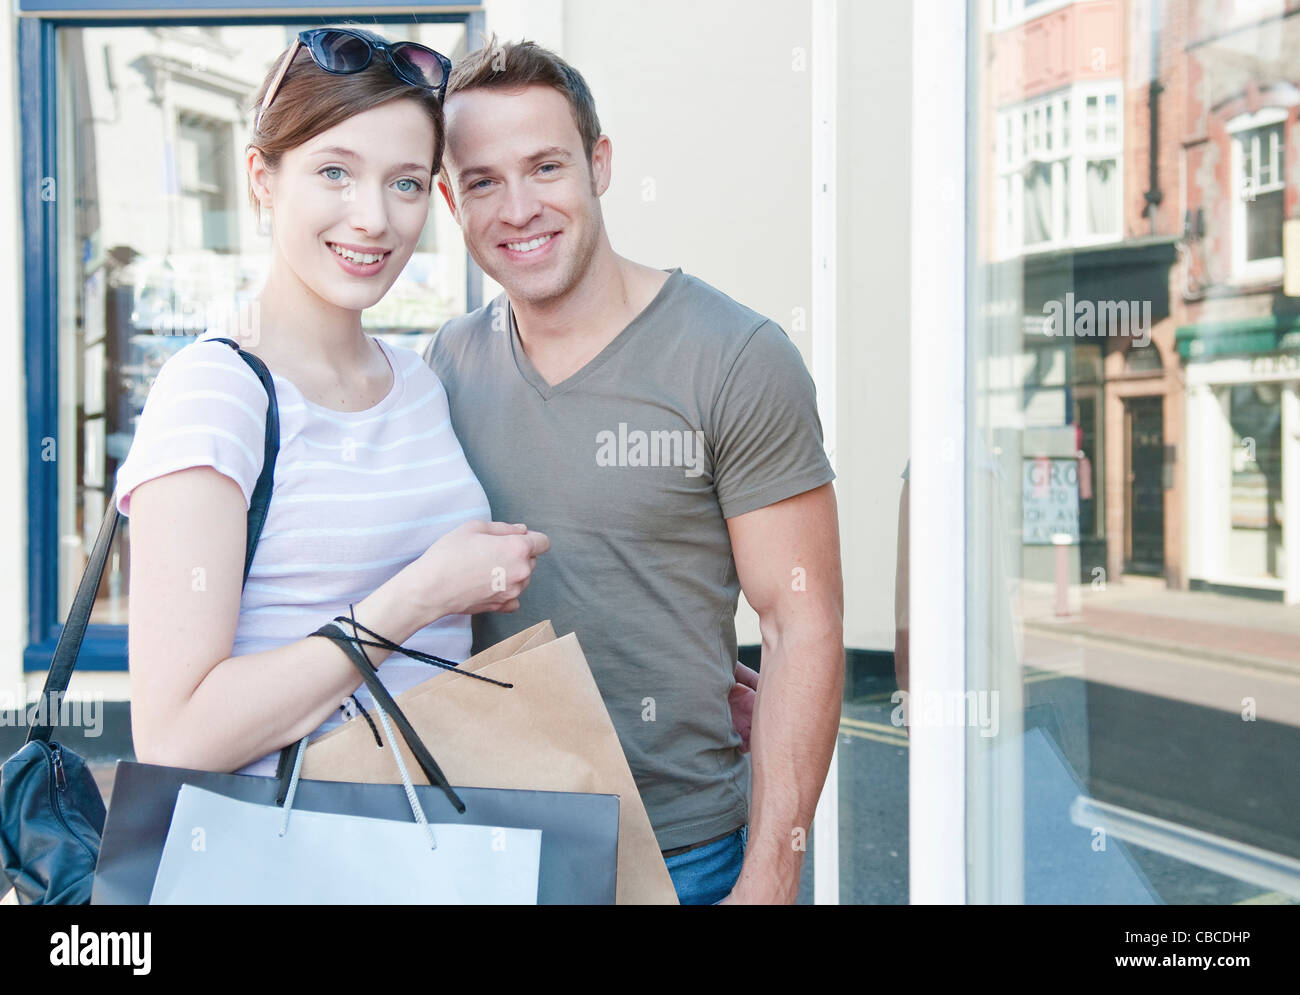 Couple carrying shopping bags Photo Stock